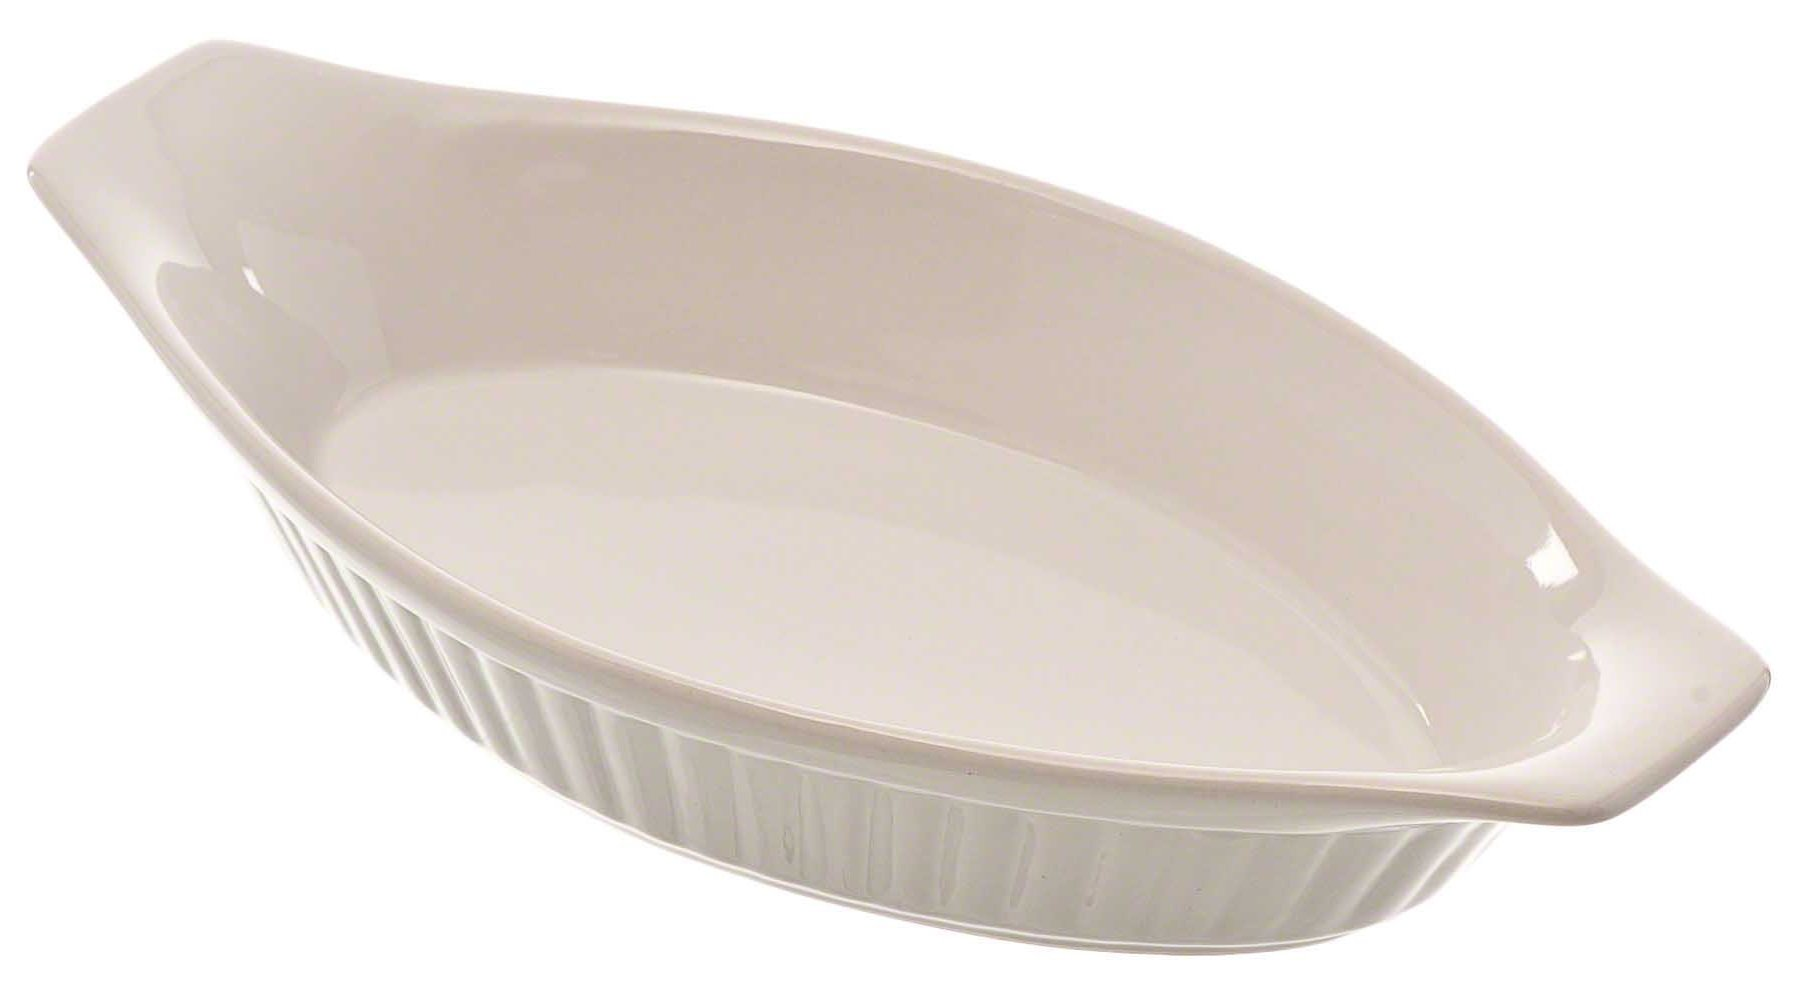 Browne (564013) 12 oz Oval Lasagna Baker by Browne Foodservice